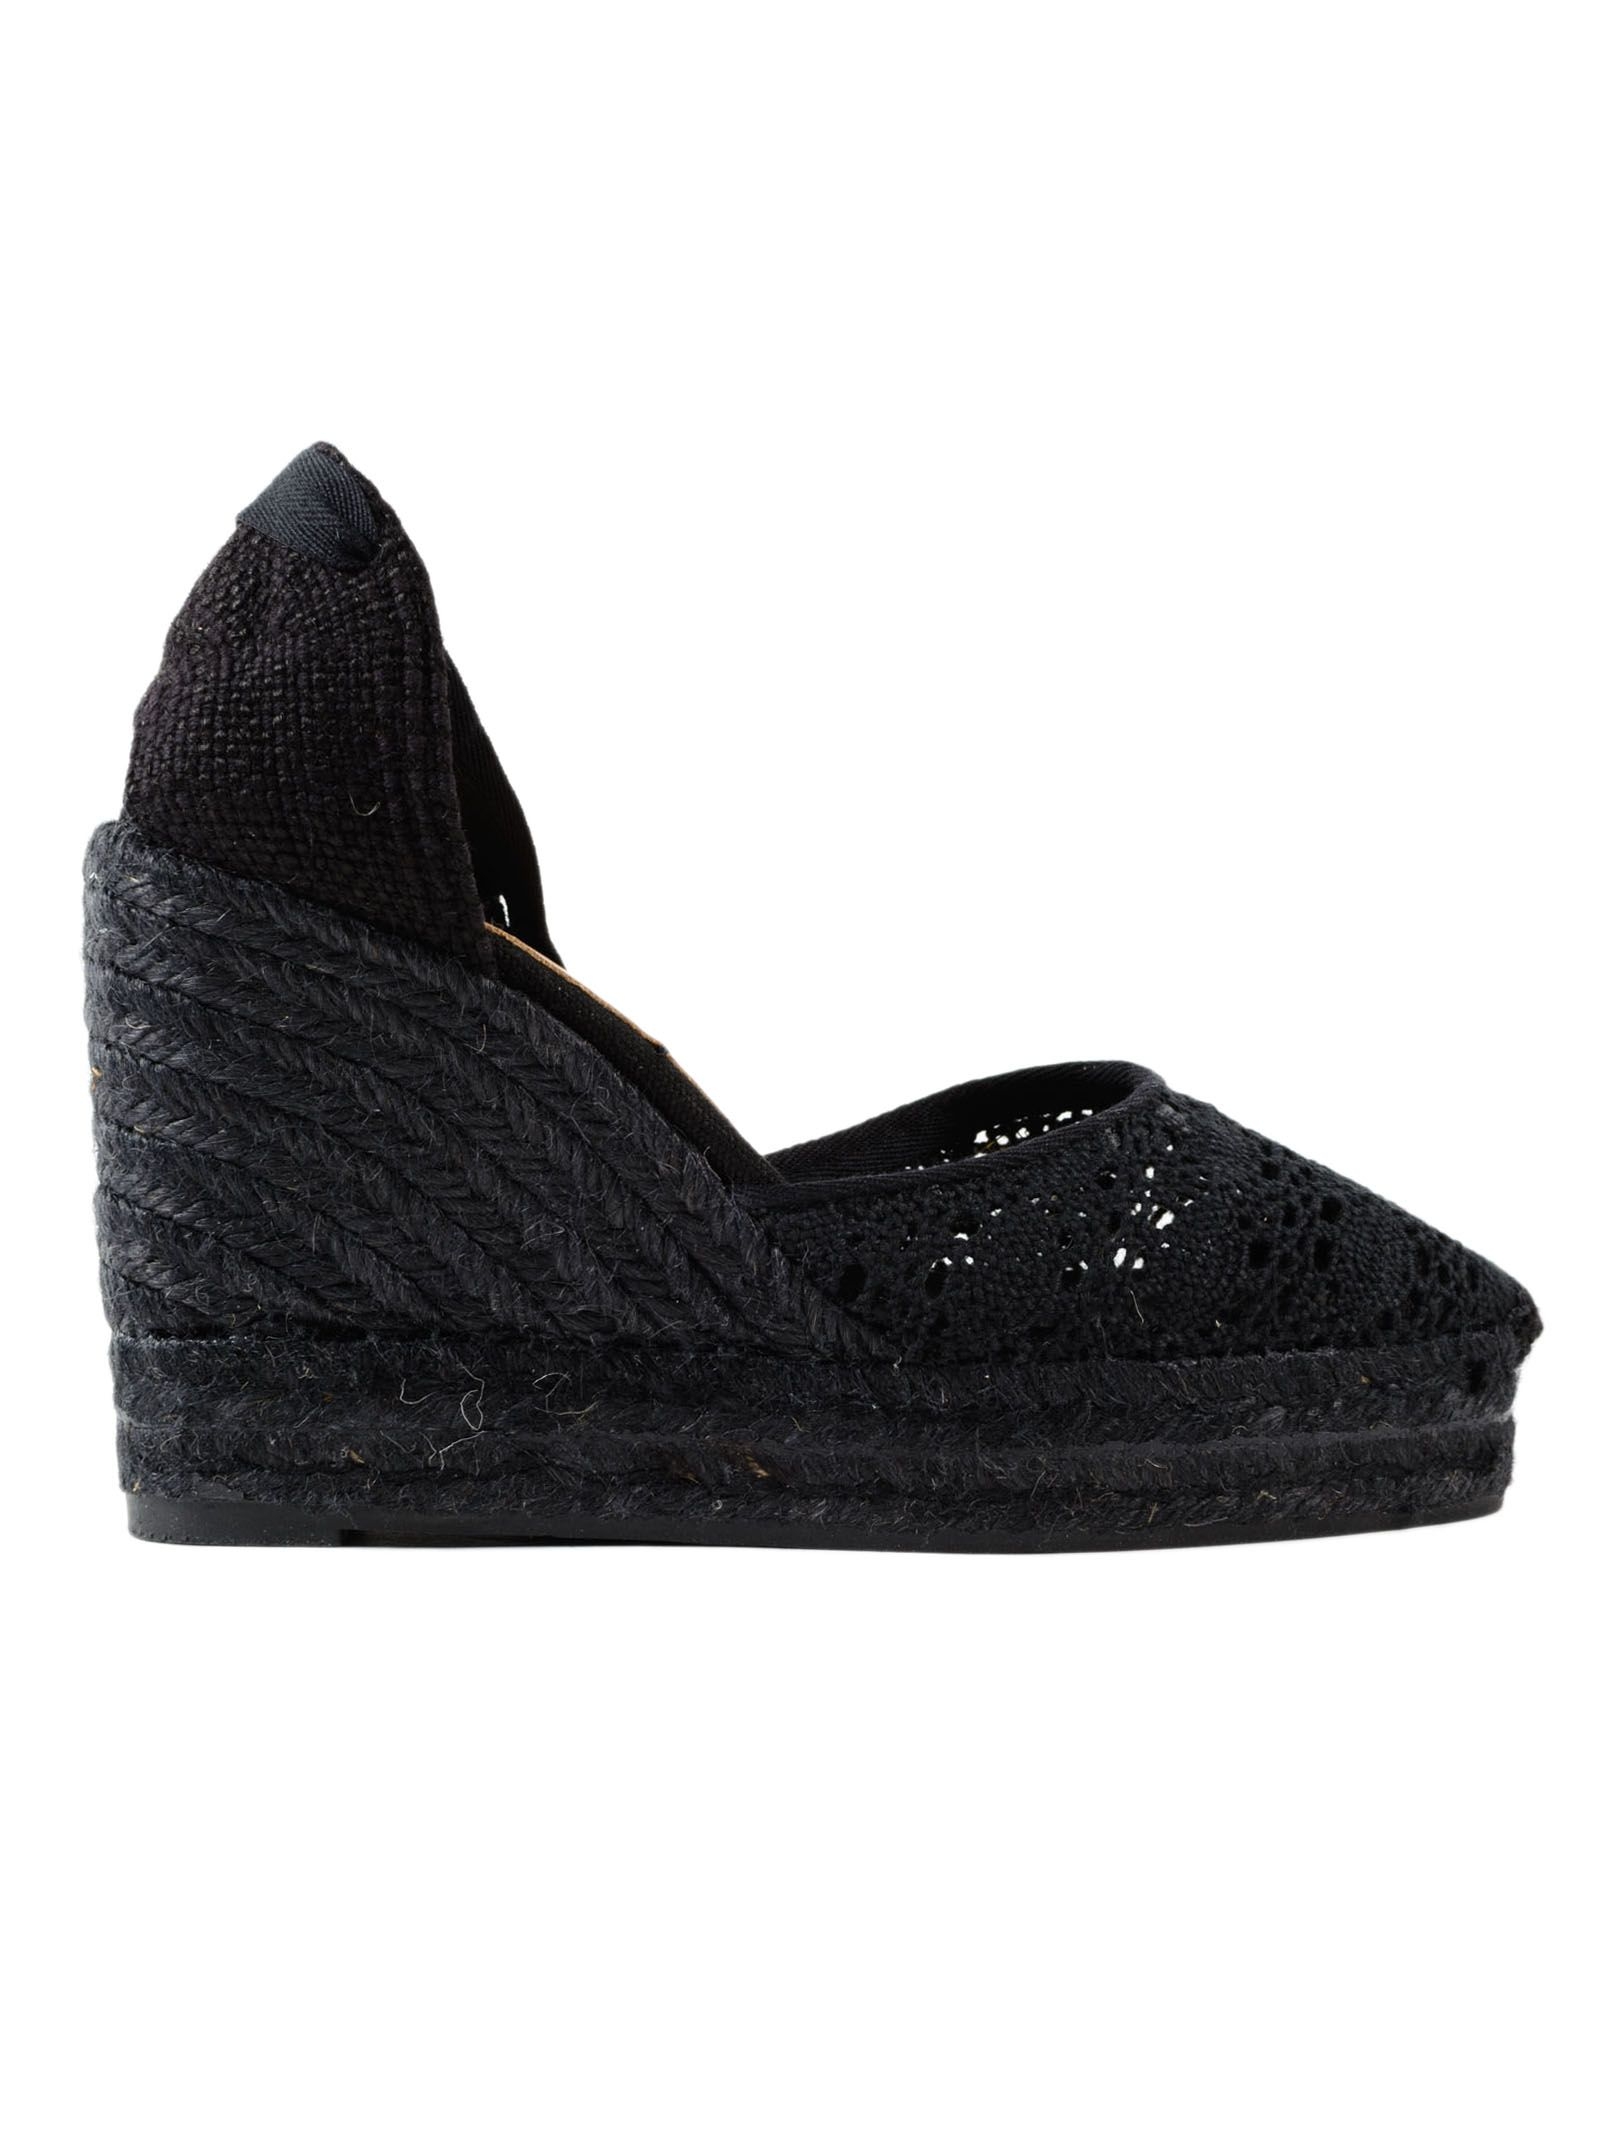 Outlet The Cheapest Castaner Carina Espadrillas Cheap Sale Latest Collections nWjqfxwO